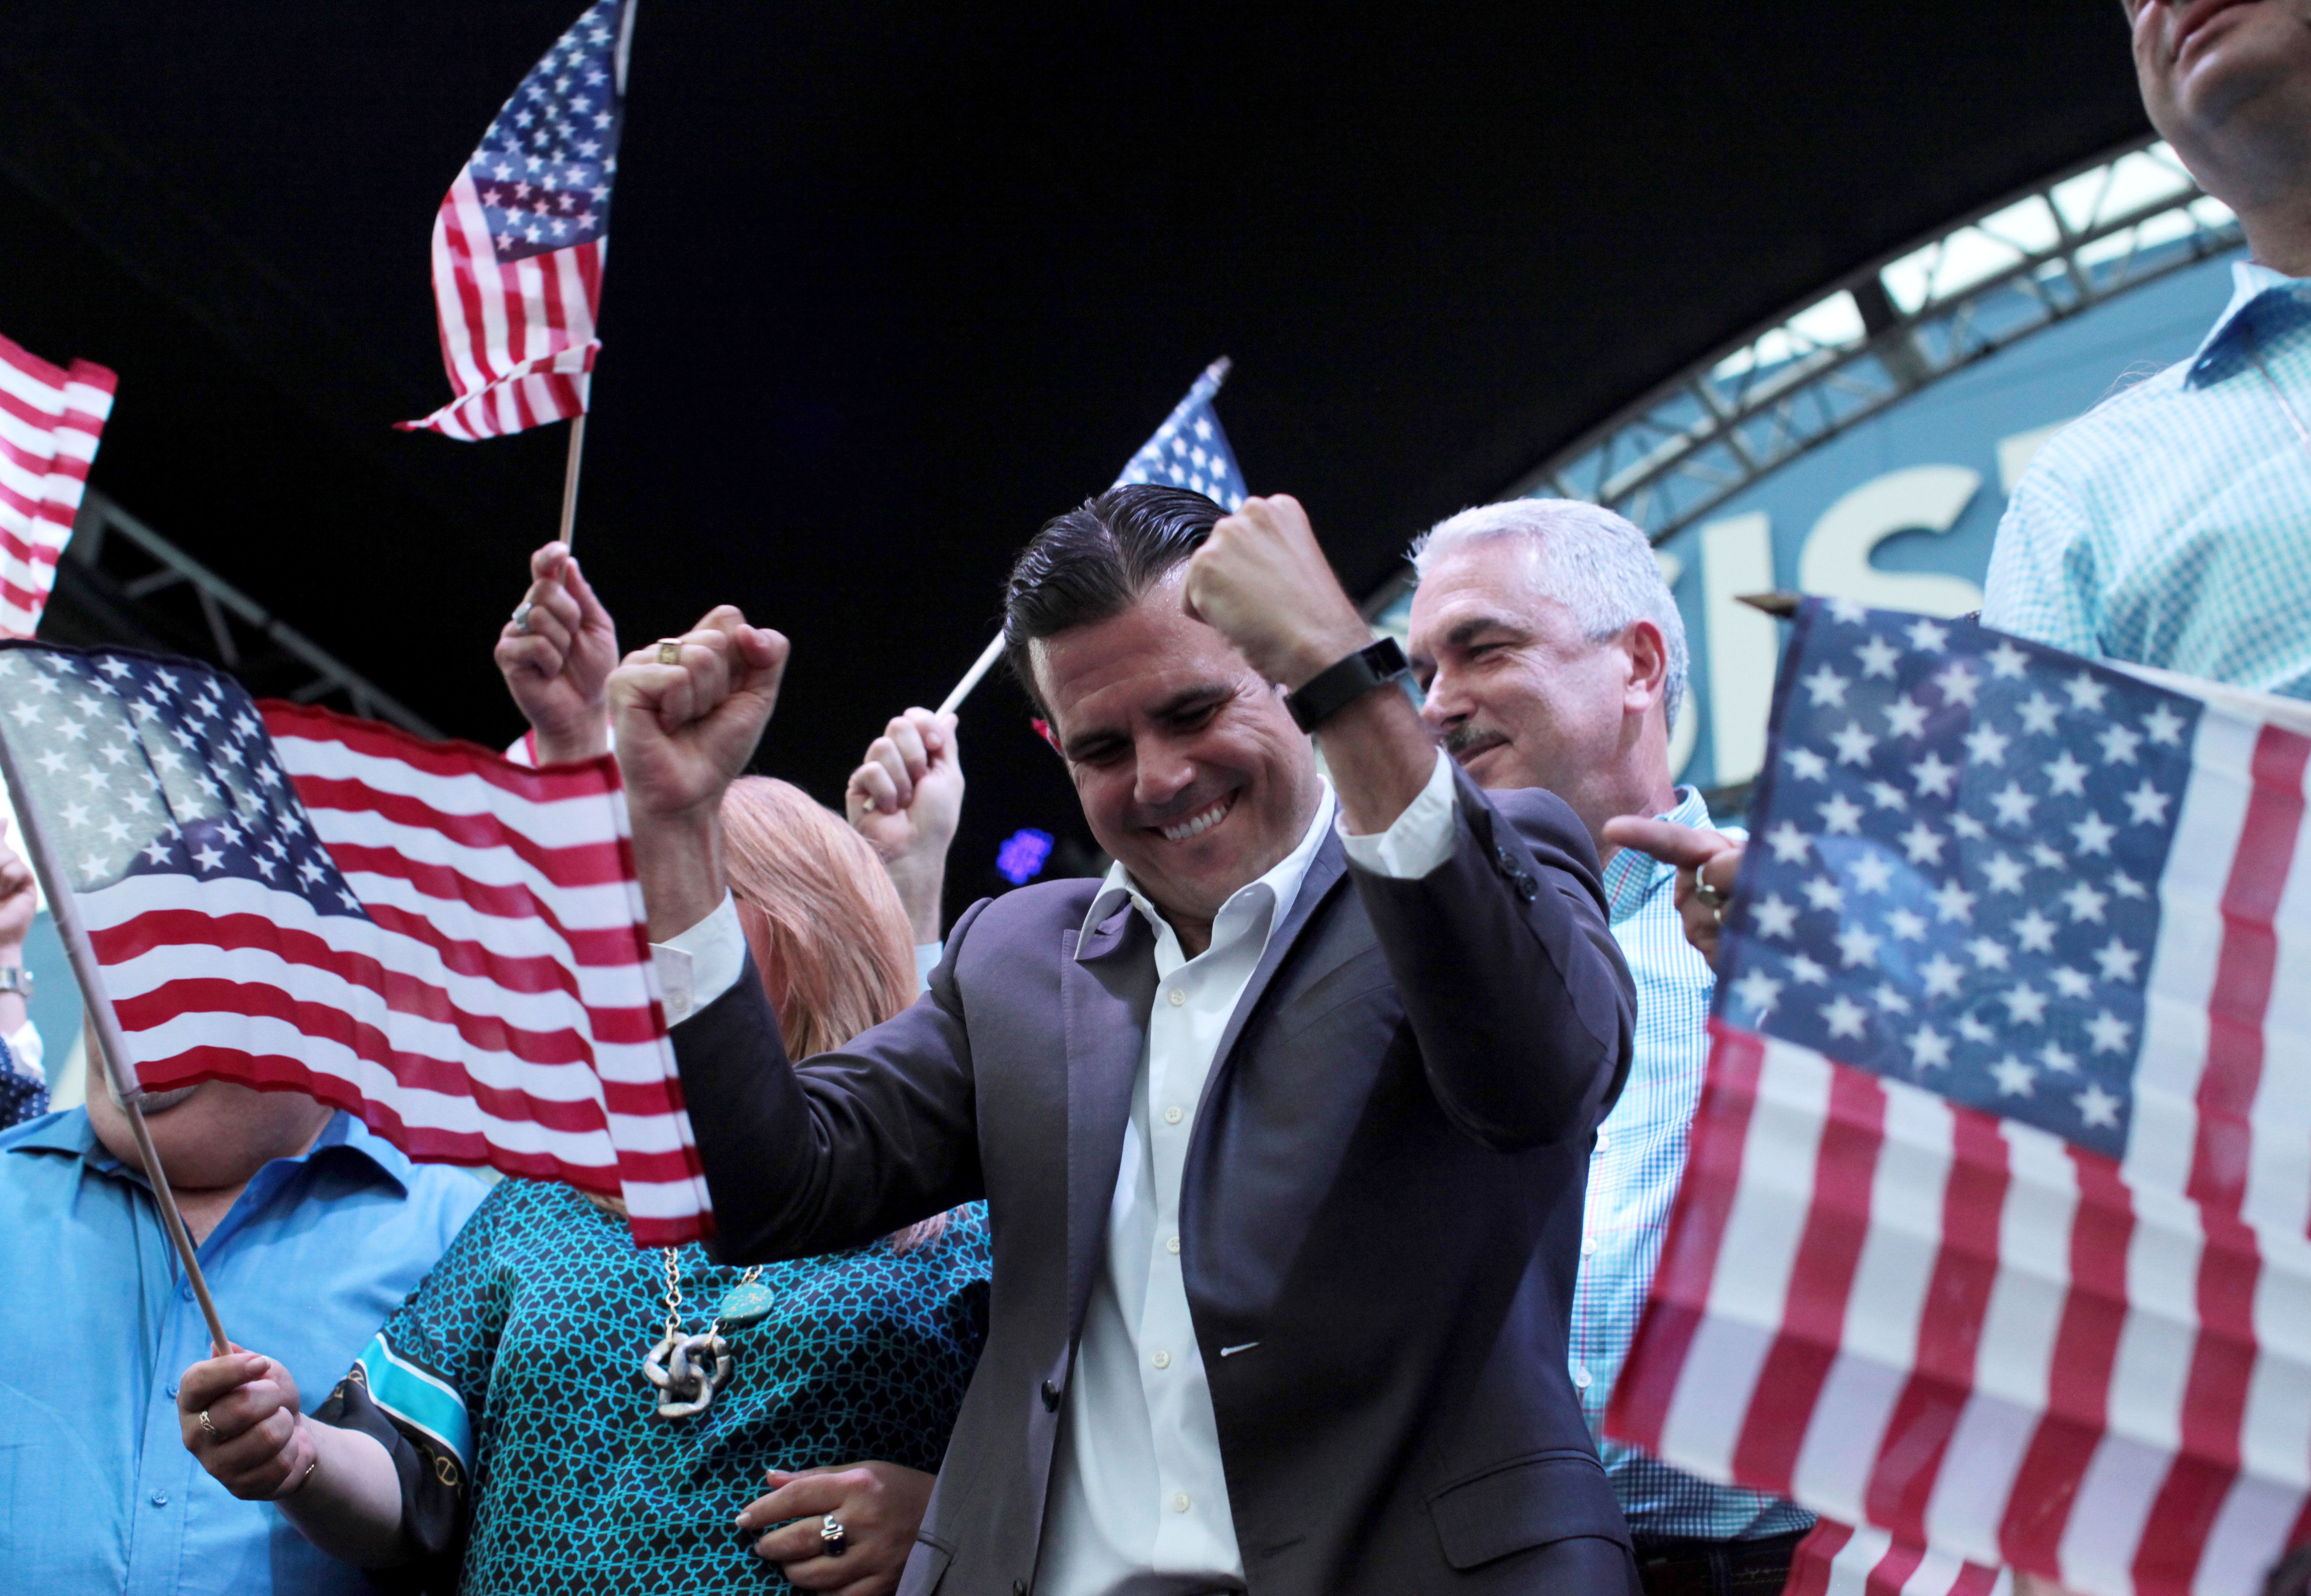 Puerto Rico Governor Ricardo Rosello (C) celebrates after the economically struggling U.S. island territory voted overwhelmingly on Sunday in favour of becoming the 51st state, in San Juan, Puerto Rico June 11, 2017. REUTERS/Alvin Baez     TPX IMAGES OF THE DAY